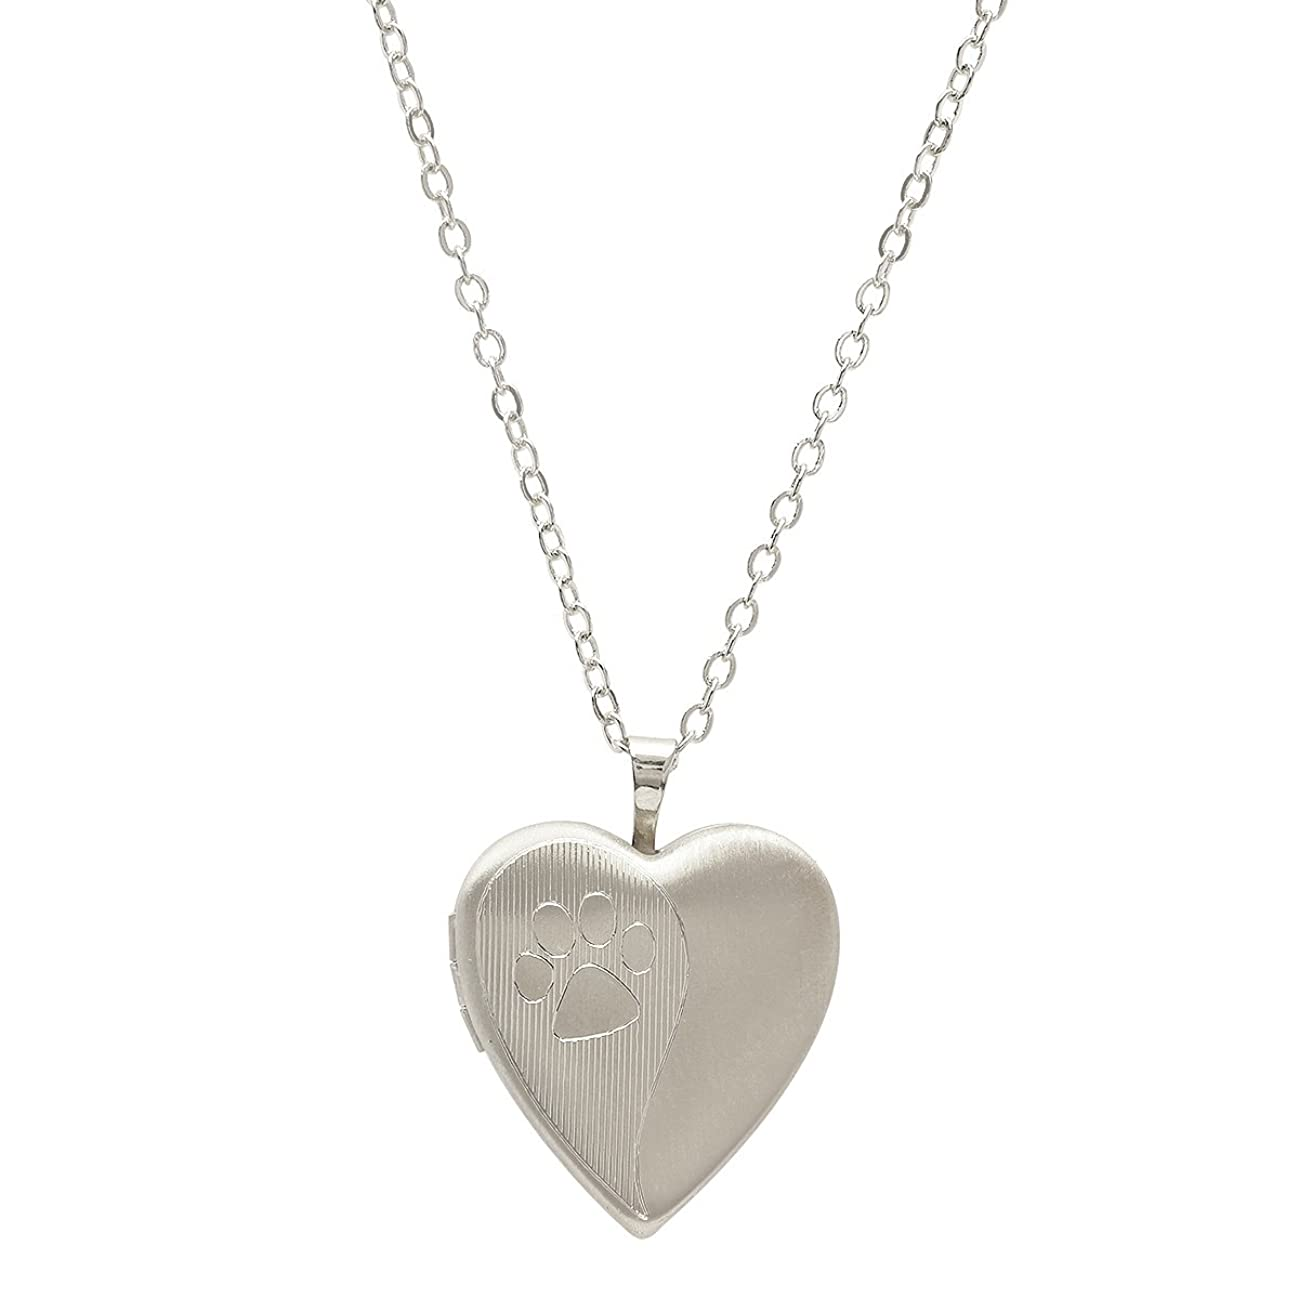 Pori Jewelers 925 Sterling Silver Dog Paw Heart Locket Necklace in Diamond Cut 18